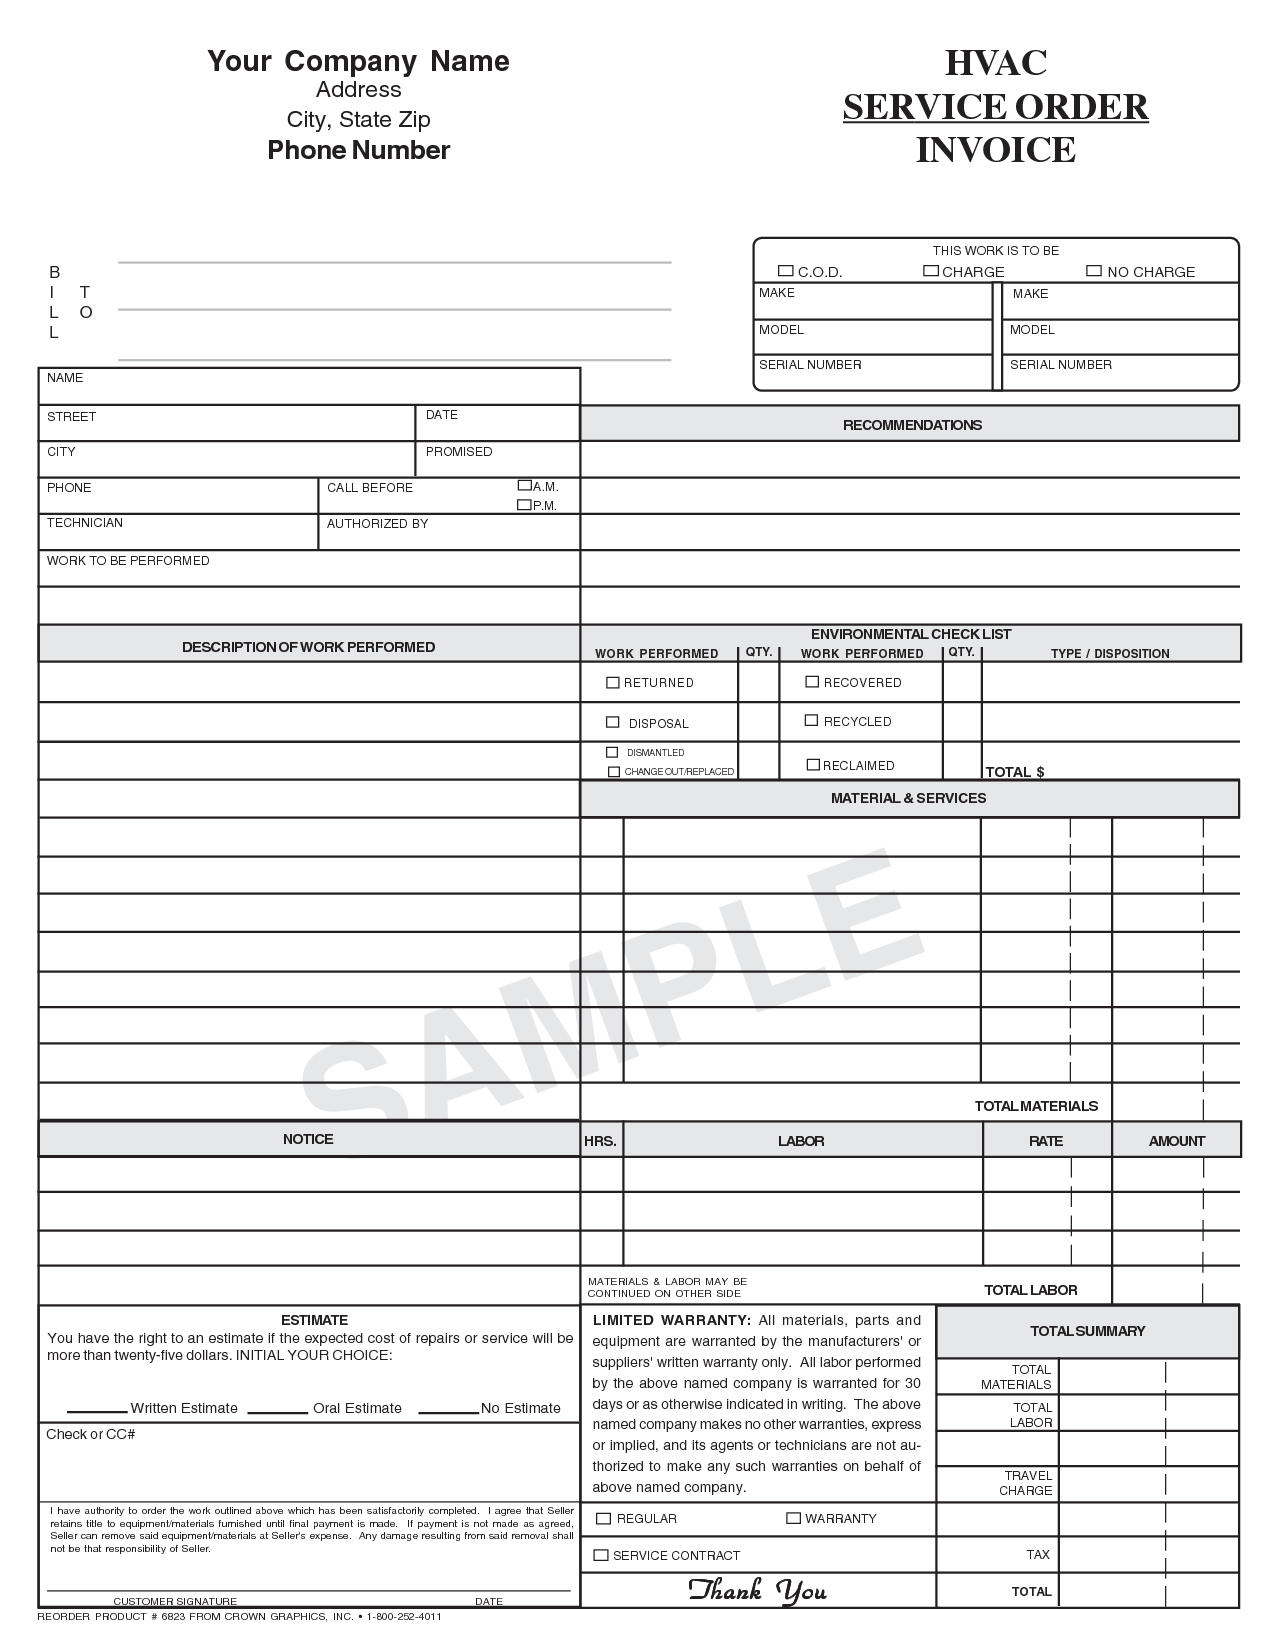 Microsoft Templates Receipt Word Download Work Order Invoice Template Free  Rabitahnet Interest On Overdue Invoices Pdf with Lawyer Invoice Hvac Invoice Template  Invoice Example Simple Invoice Sage Invoice Templates Word